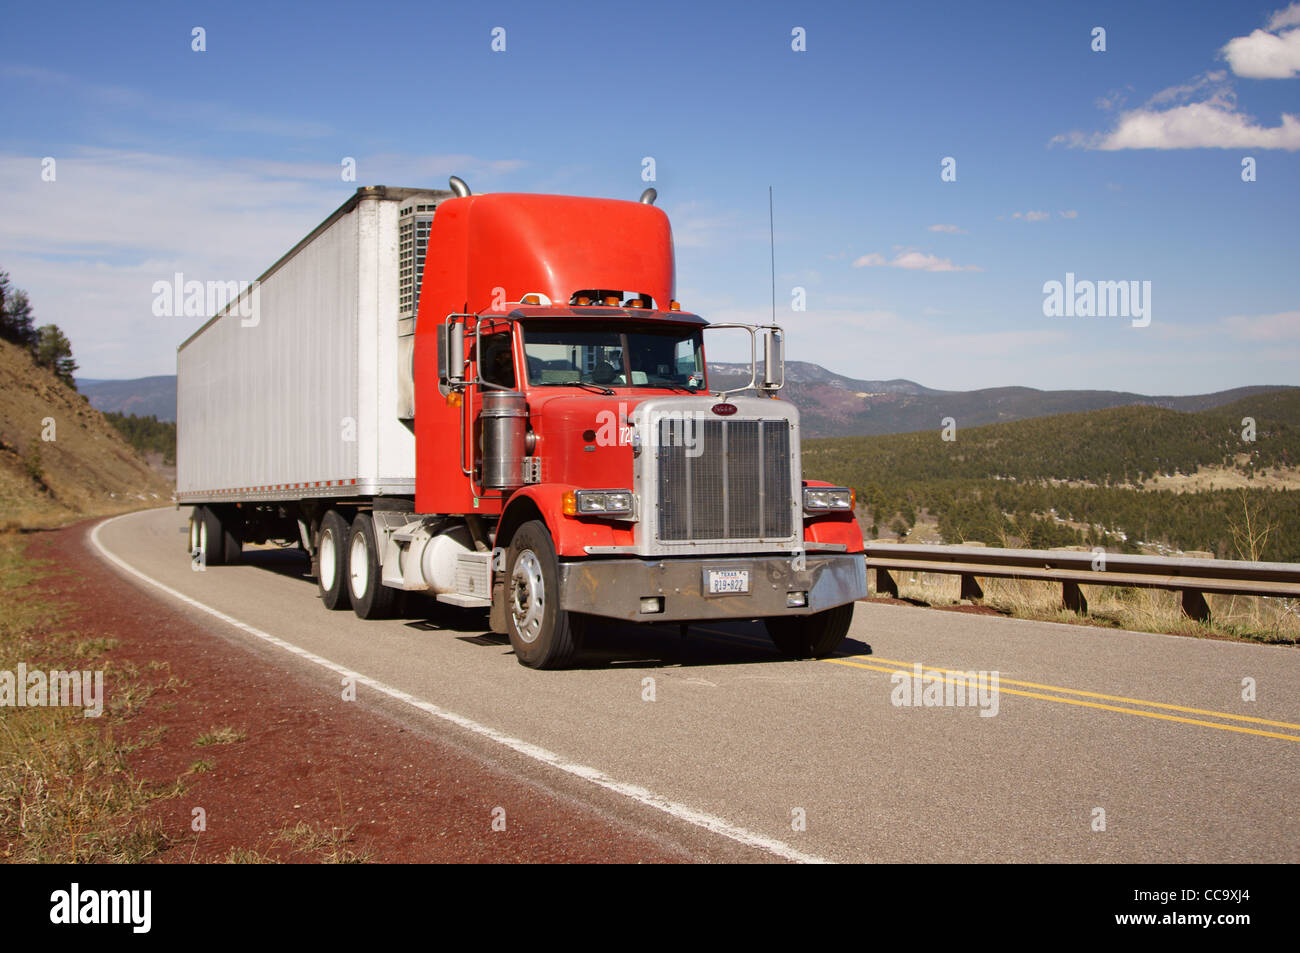 truck highway semi trailer transportation highways hiway road ship vehicles exhibit carriage carrier carry - Stock Image